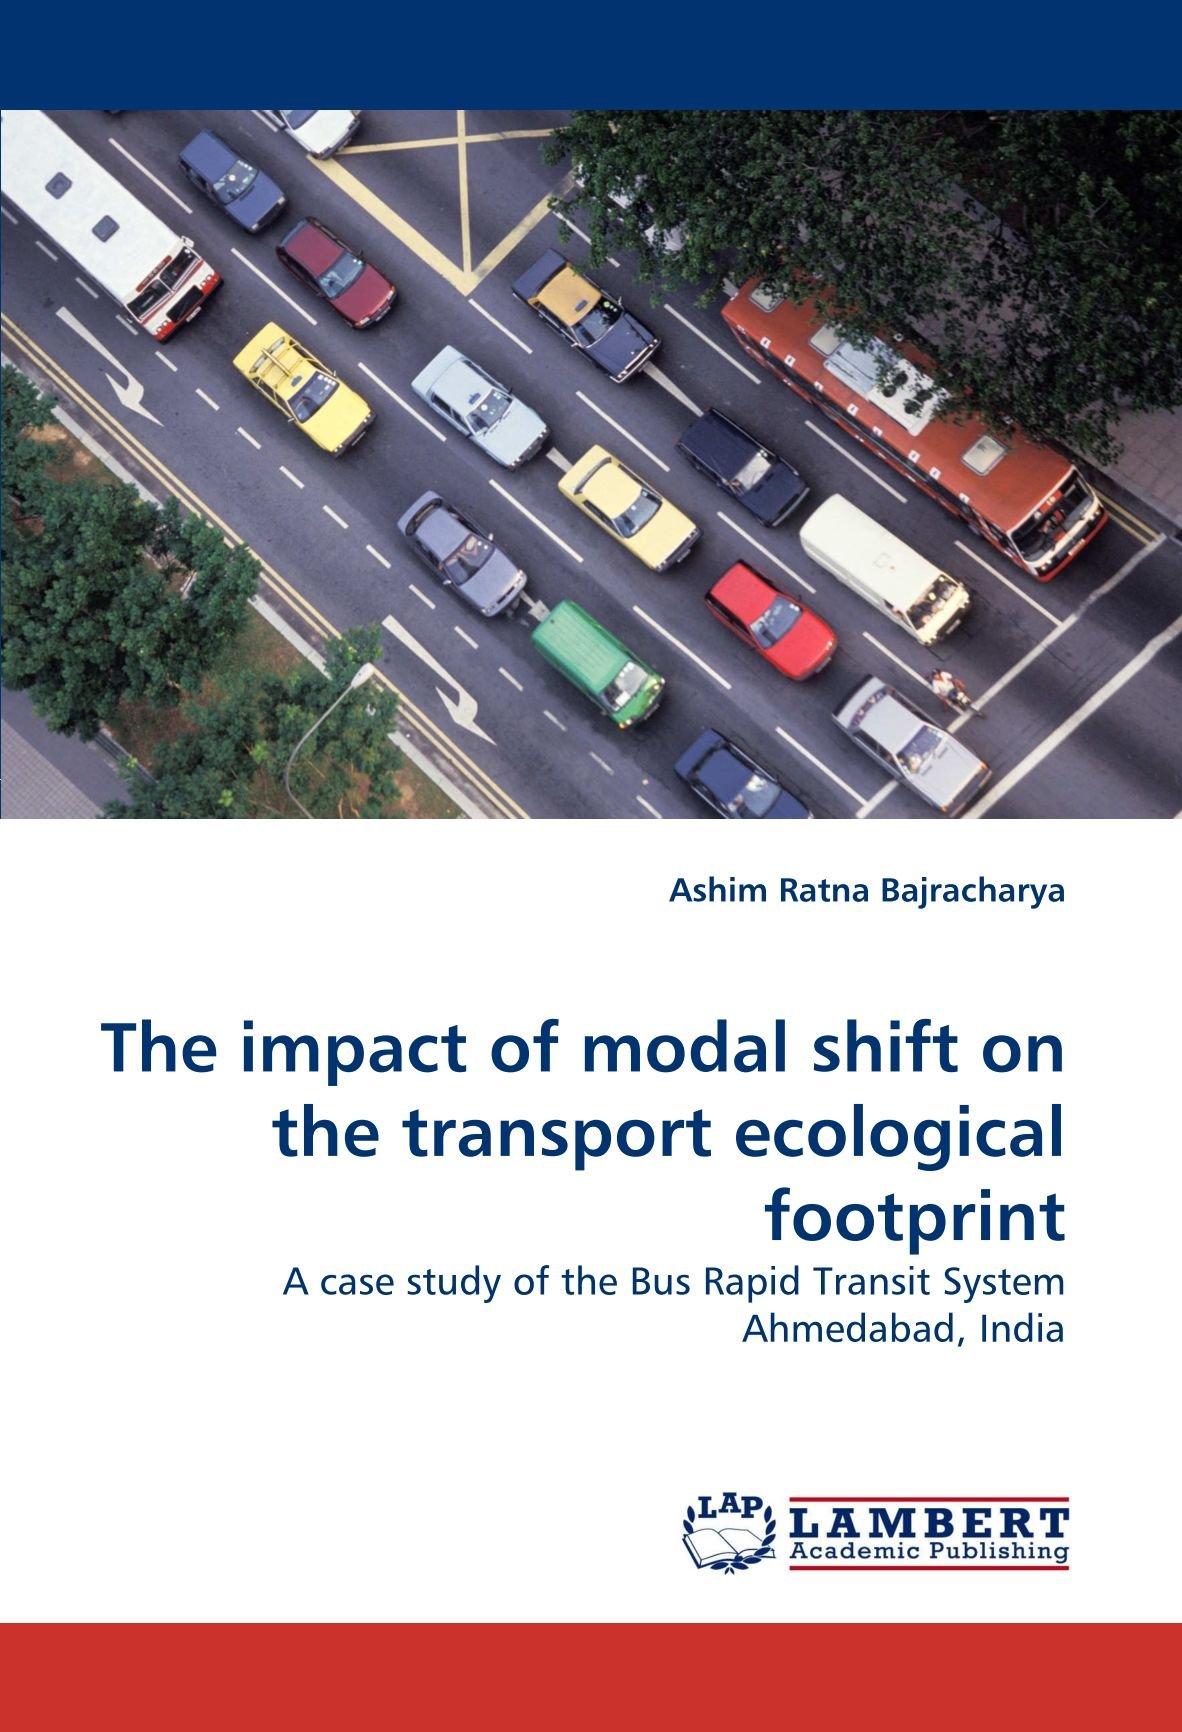 The Impact Of Modal Shift On The Transport Ecological Footprint A Case Study Of The Bus Rapid Transit System Ahmedabad India Bajracharya Ashim Ratna 9783844320565 Amazon Com Books